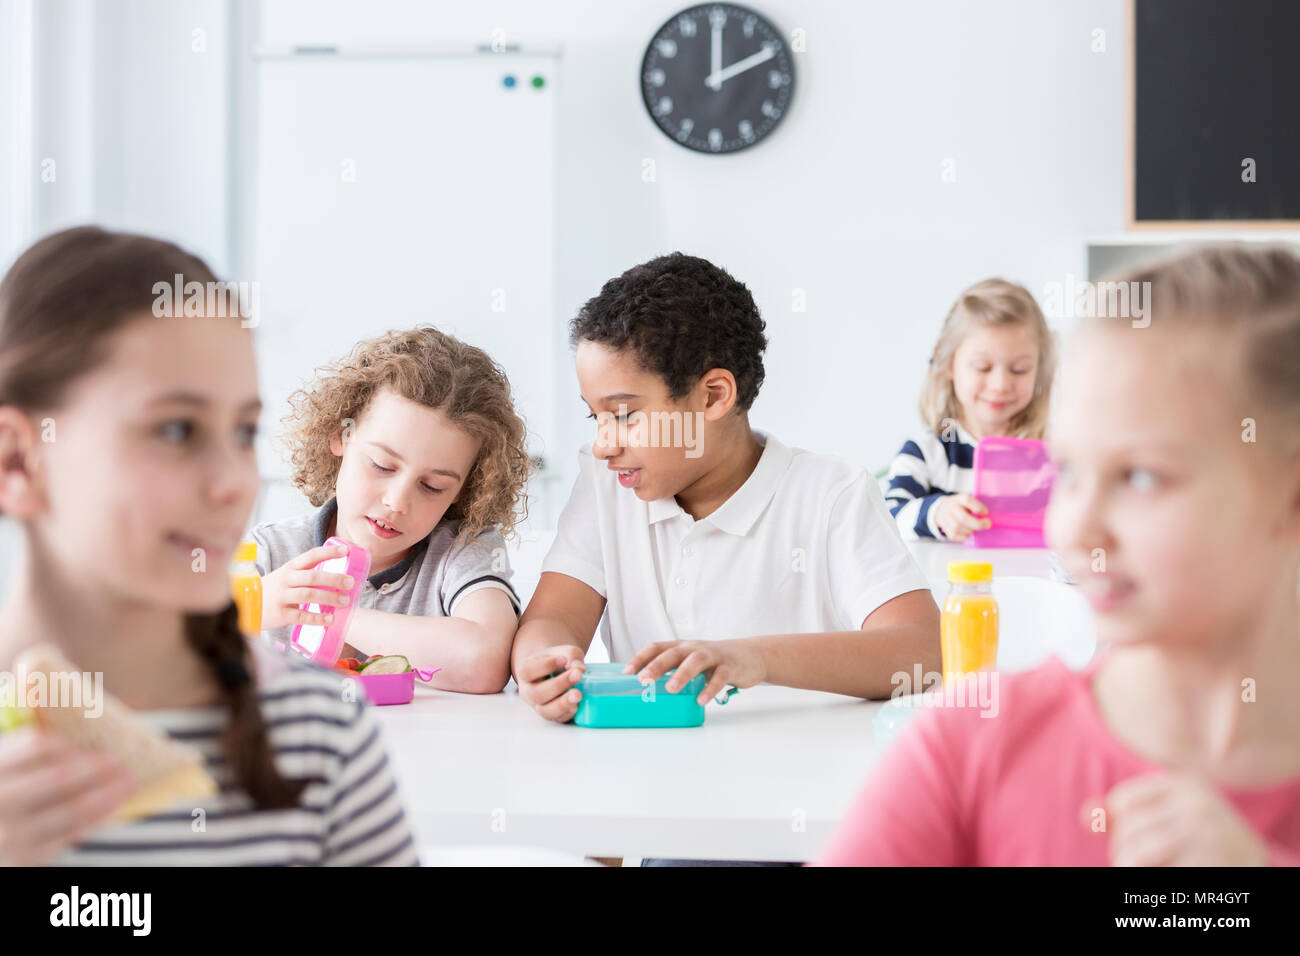 African-american boy eating lunch with friend in the school's canteen Stock Photo